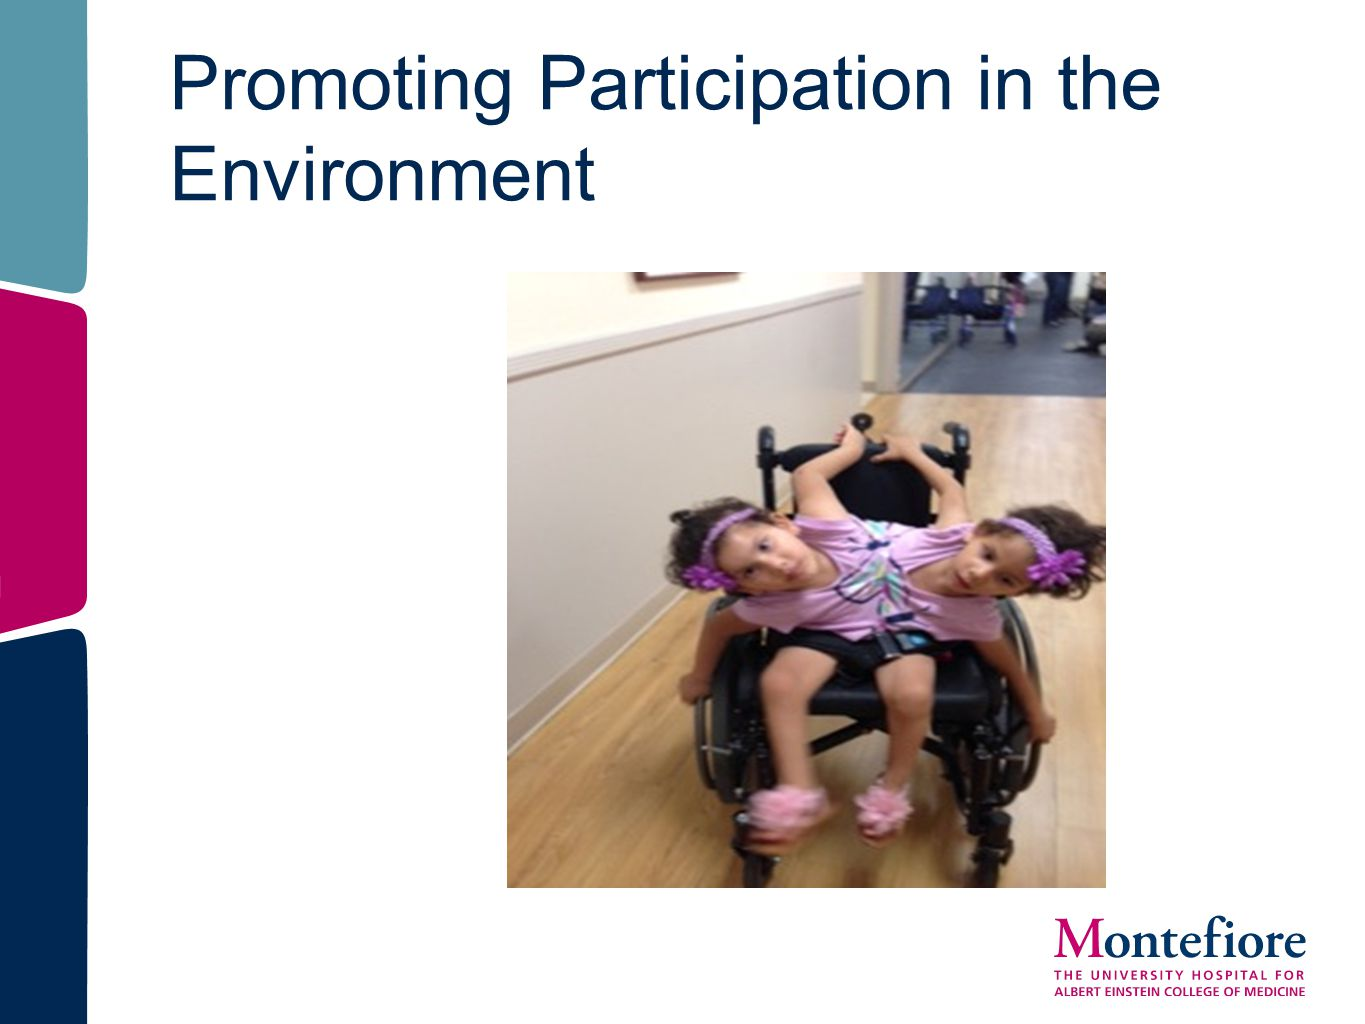 Promoting Participation in the Environment